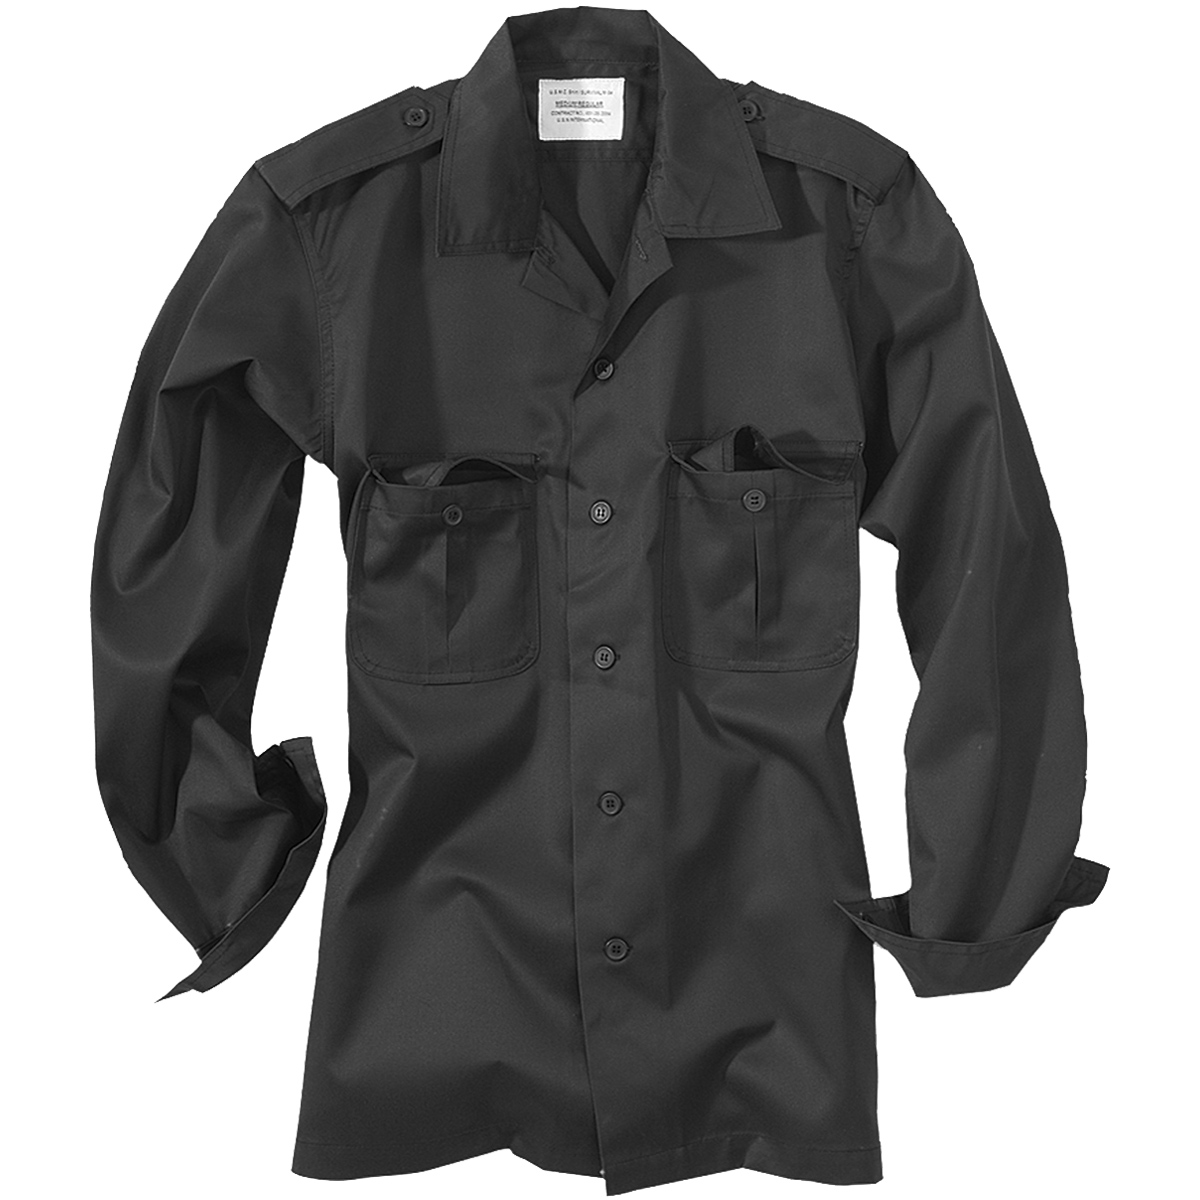 281c8dd7acb Details about Surplus Security Guard Tactical Mens Work Shirt Long-Sleeve  Fishing Black S-XXL